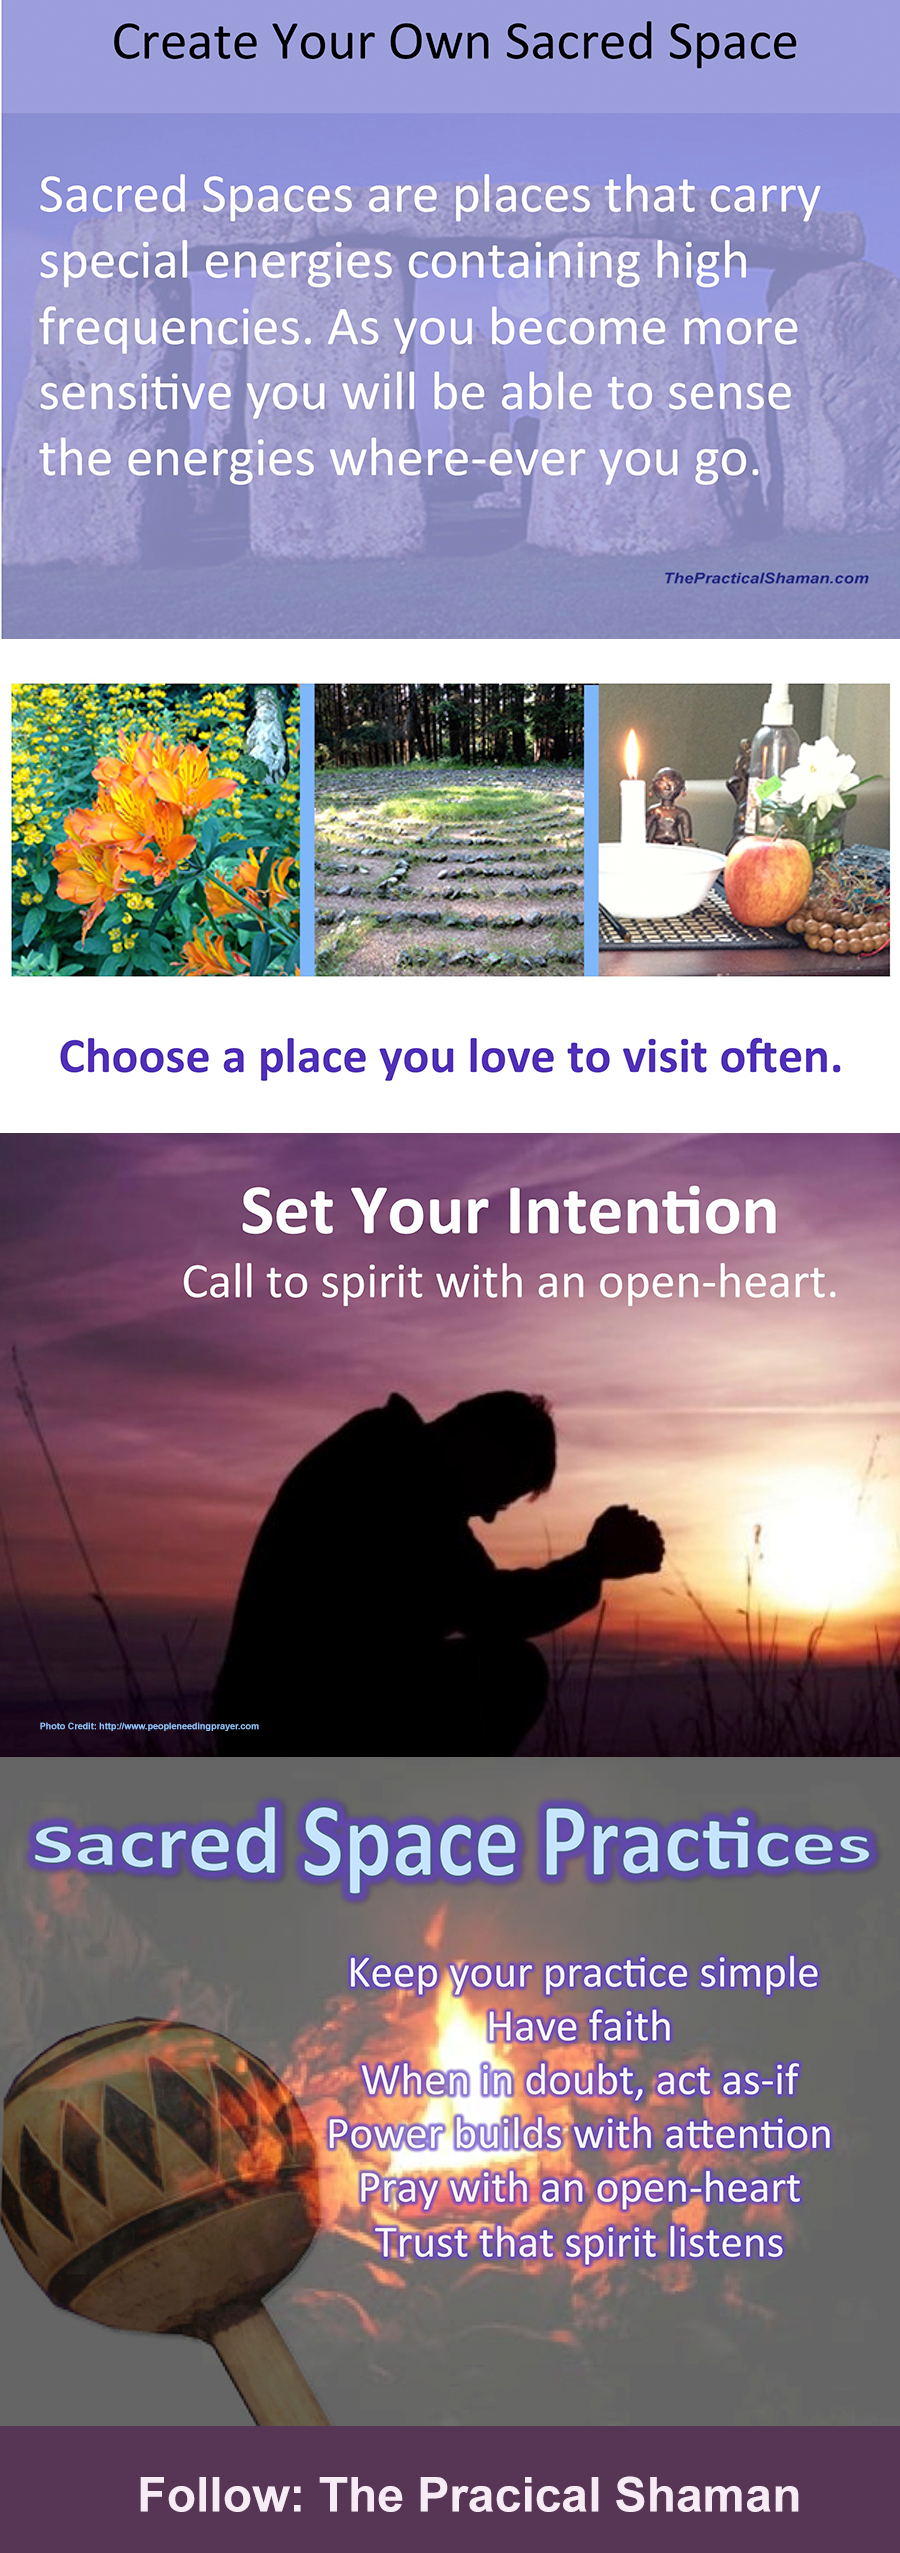 Tips for Creating Your Own Sacred Space